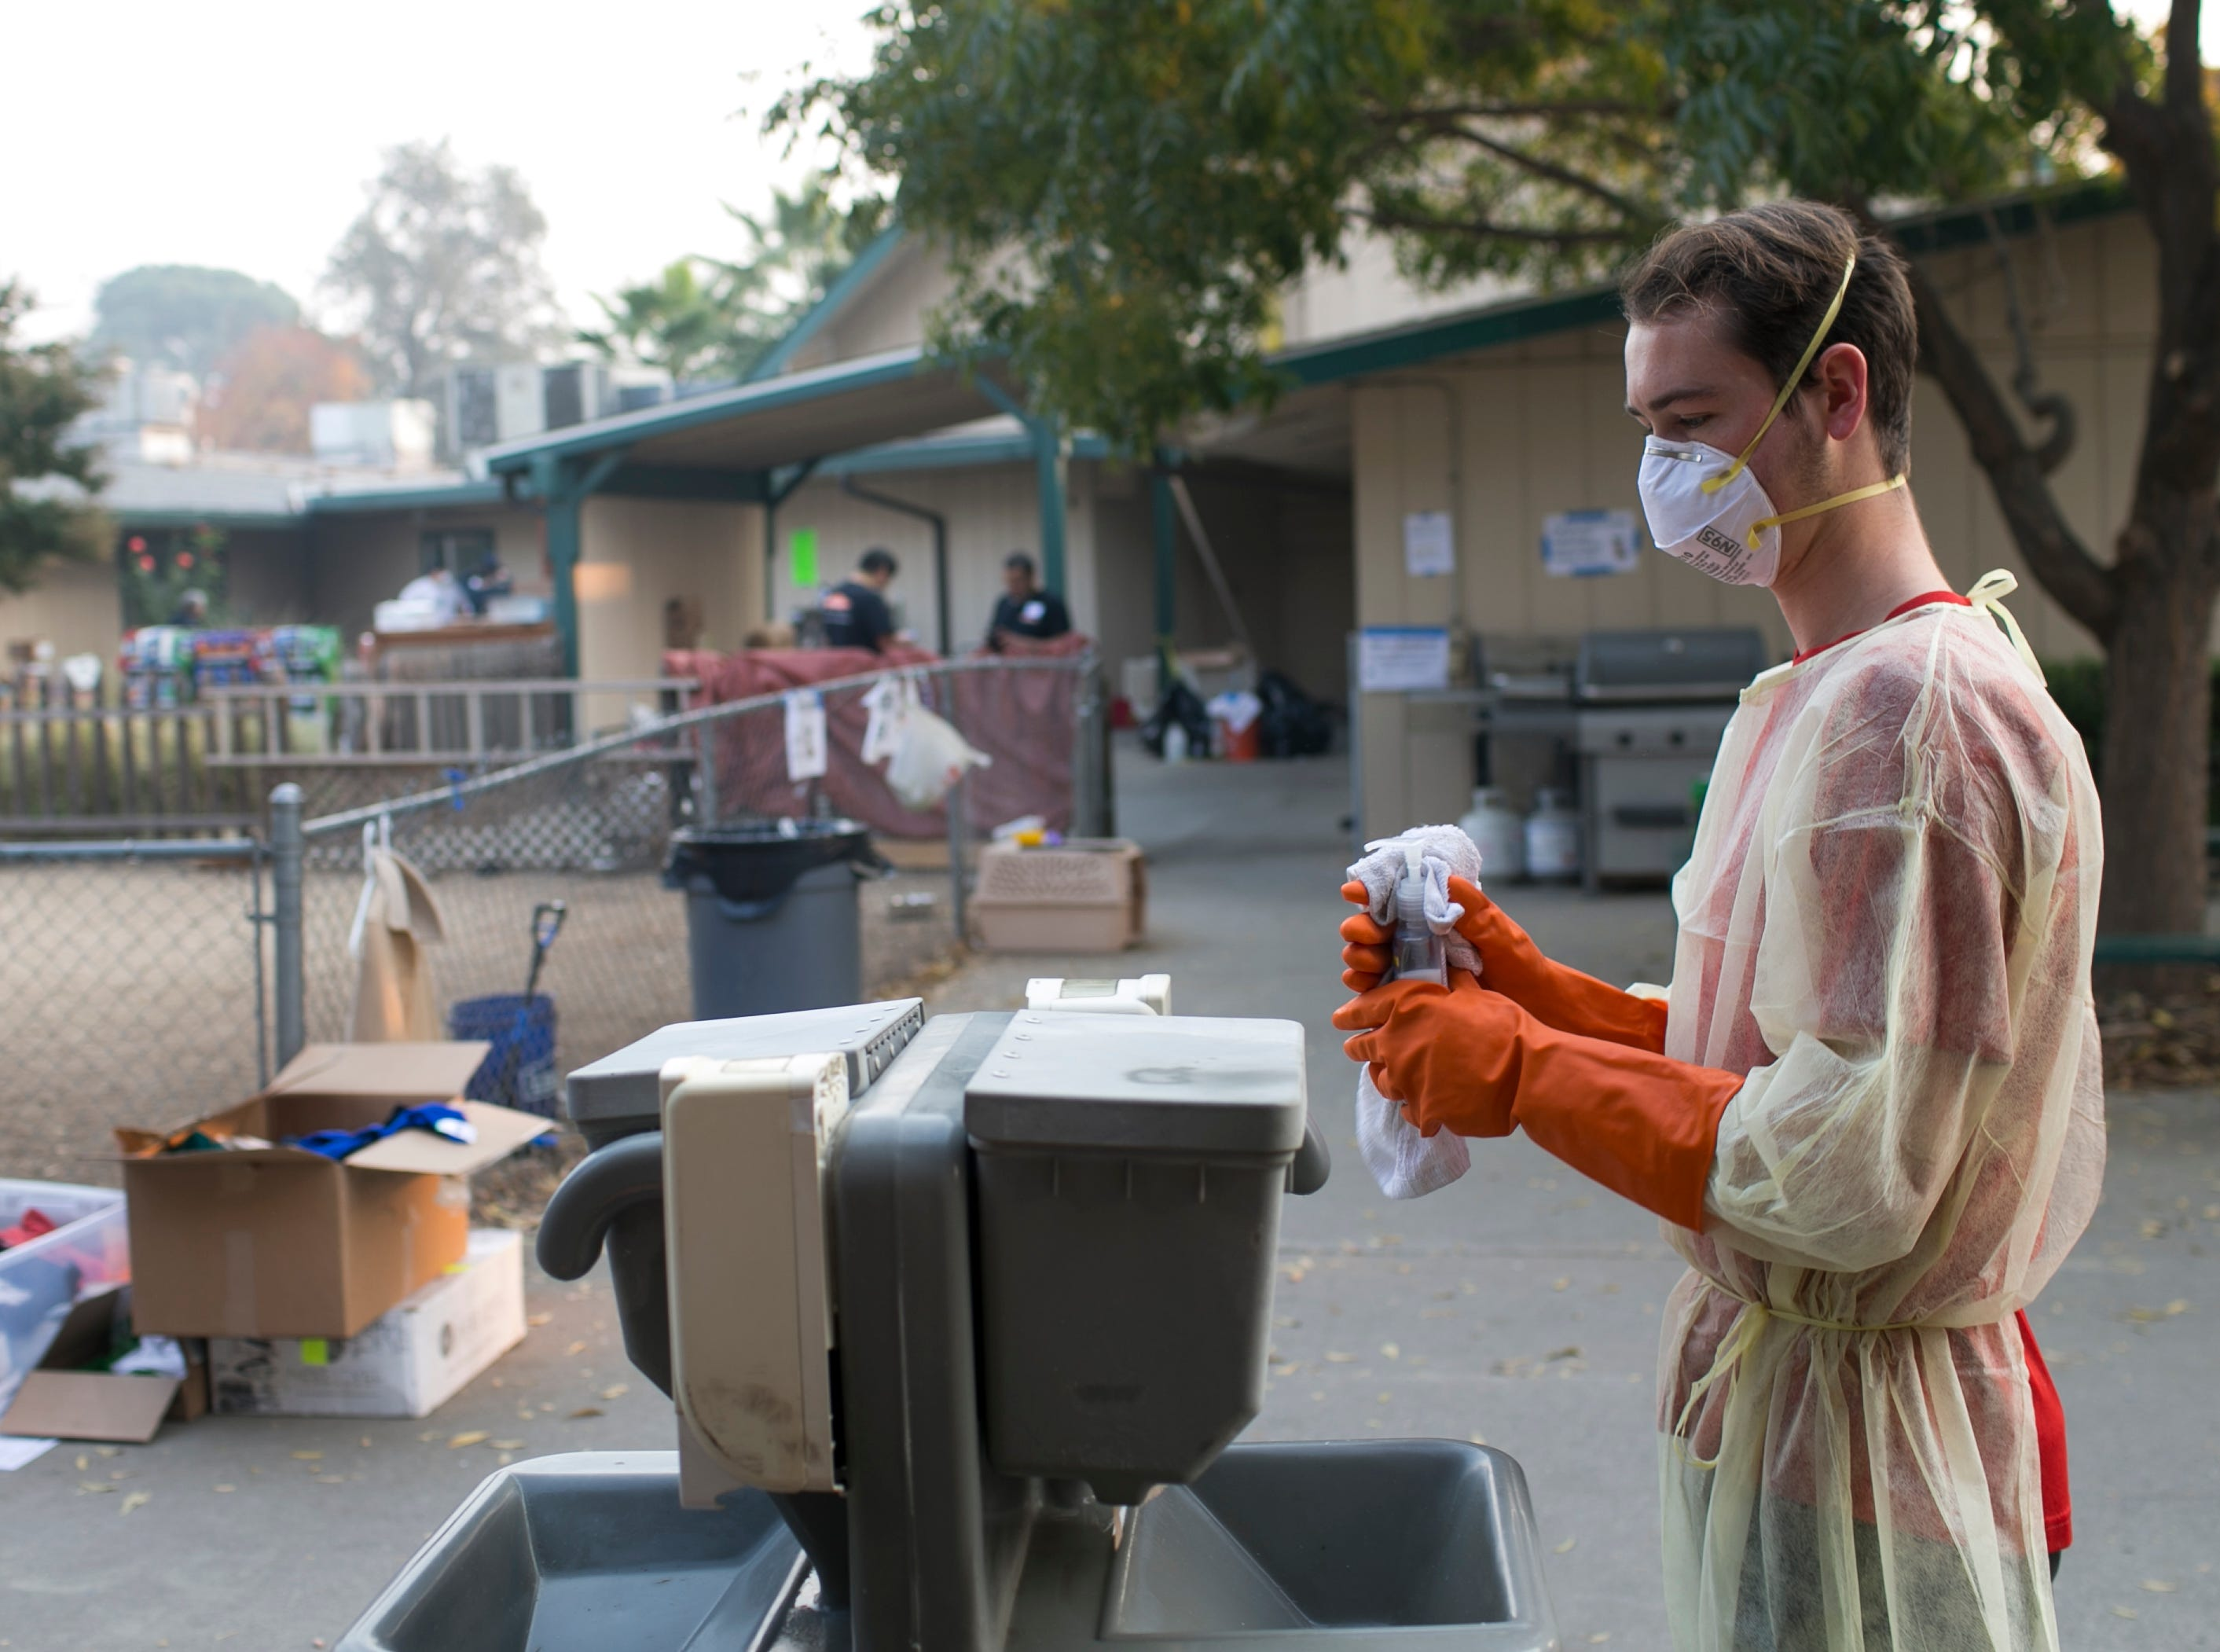 Volunteer Matt Negley washes down a soap station with bleach at the East Avenue Church shelter in Chico, California, on Nov. 17, 2018. Nearly a week after the Camp Fire burned through the town of Paradise, killing at least 84 and displacing thousands, several reports of Norovirus outbreak were reported at shelters across Chico.